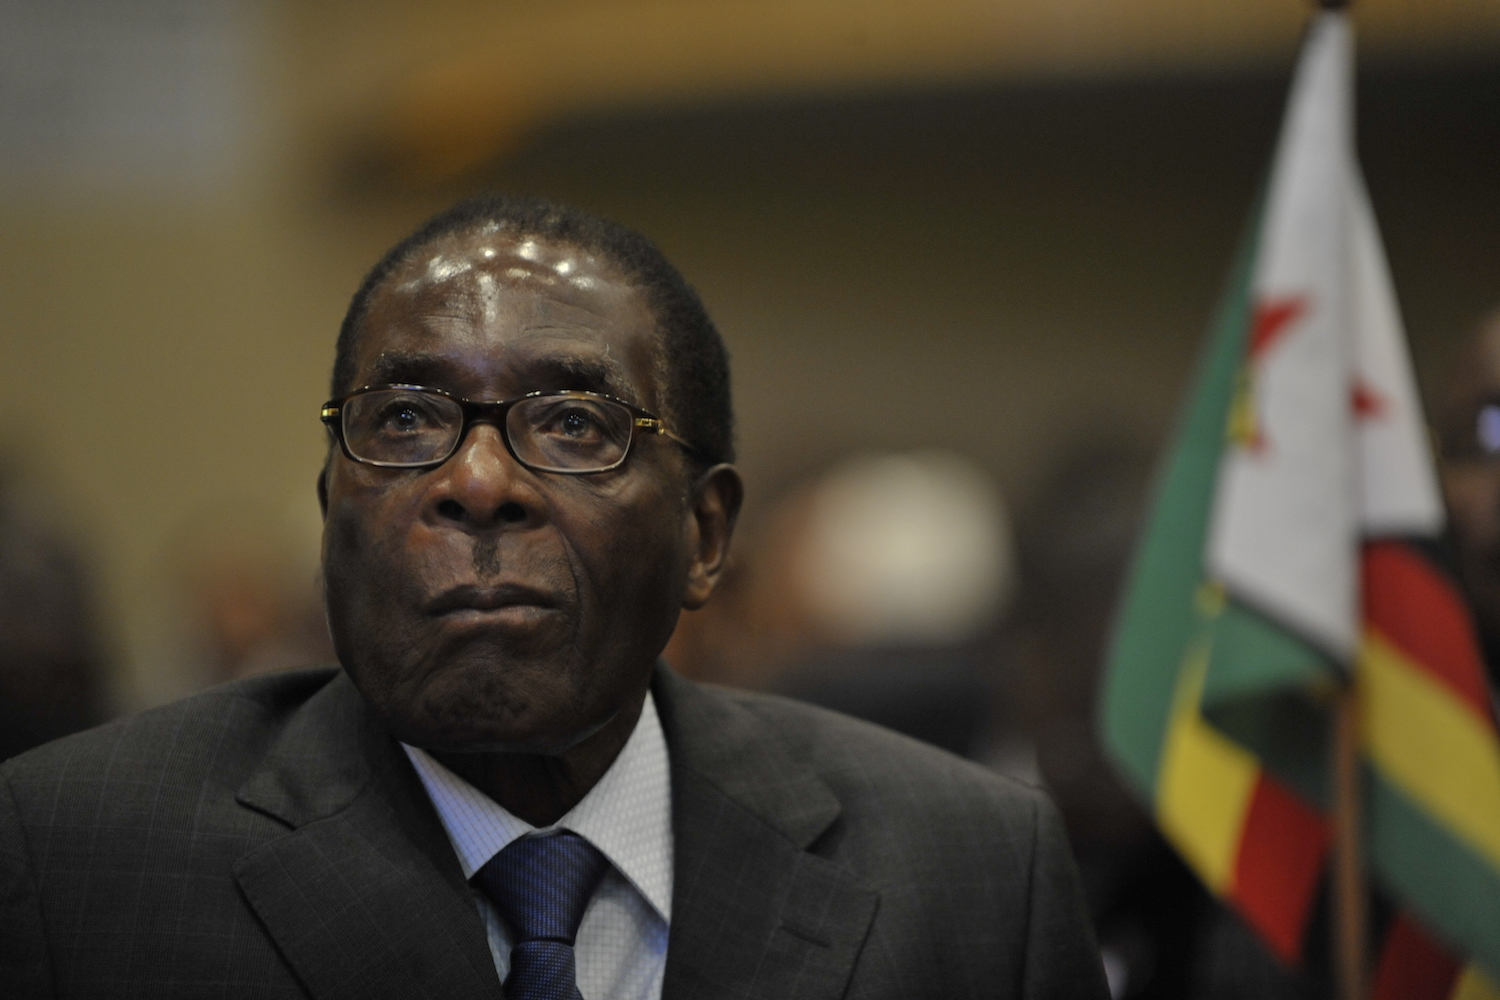 The Army has promised a bloodless rebellion against President Robert Mugabe, but there's good reason to doubt their claims. Credit: Wikimedia Commons